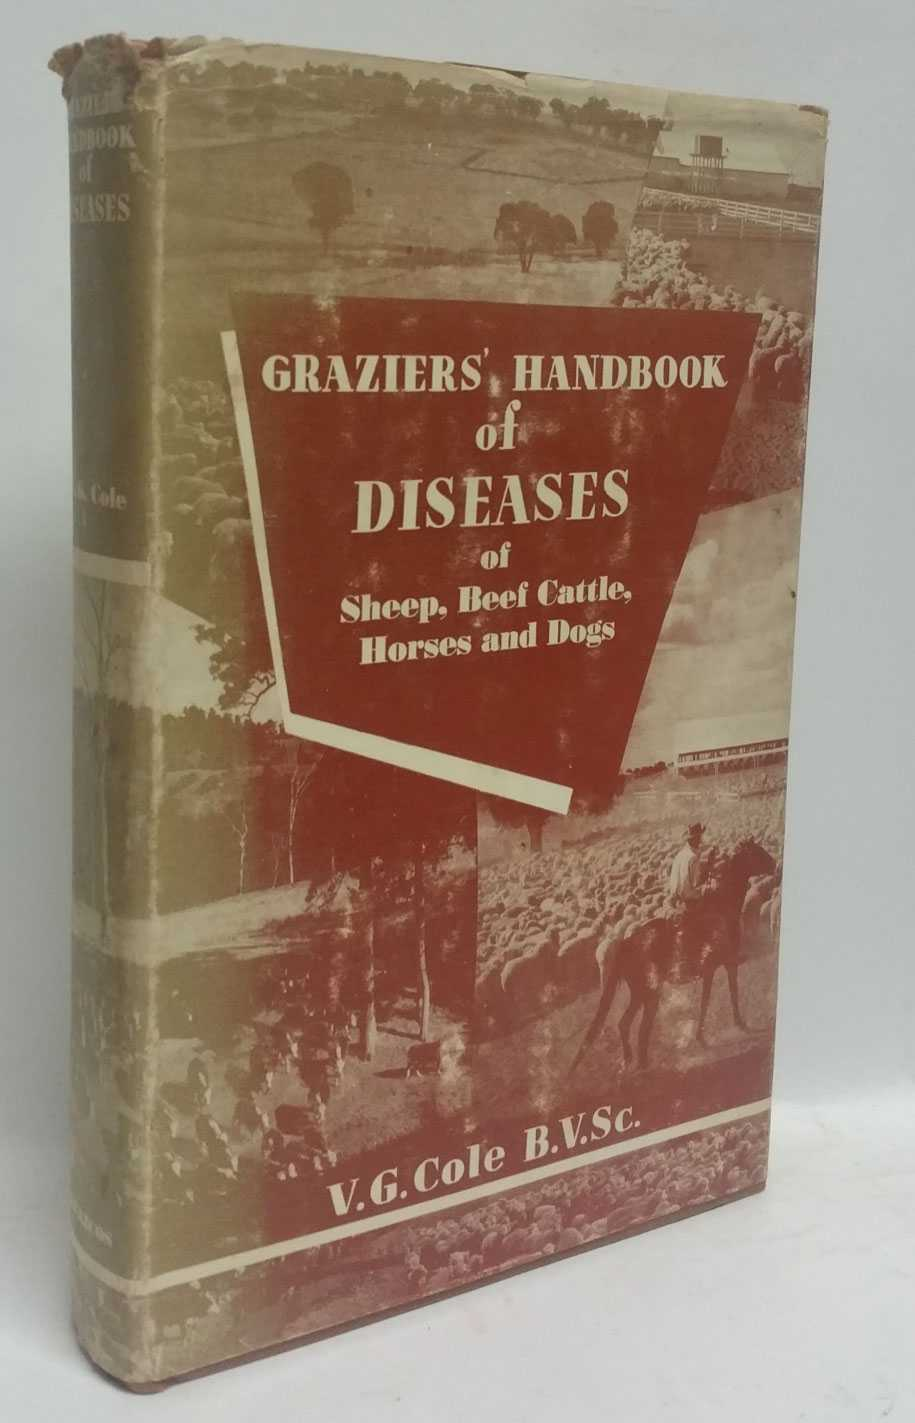 Graziers' Handbook of Diseases of Sheep, Beef Cattle, Horses and Dogs, V. G. Cole